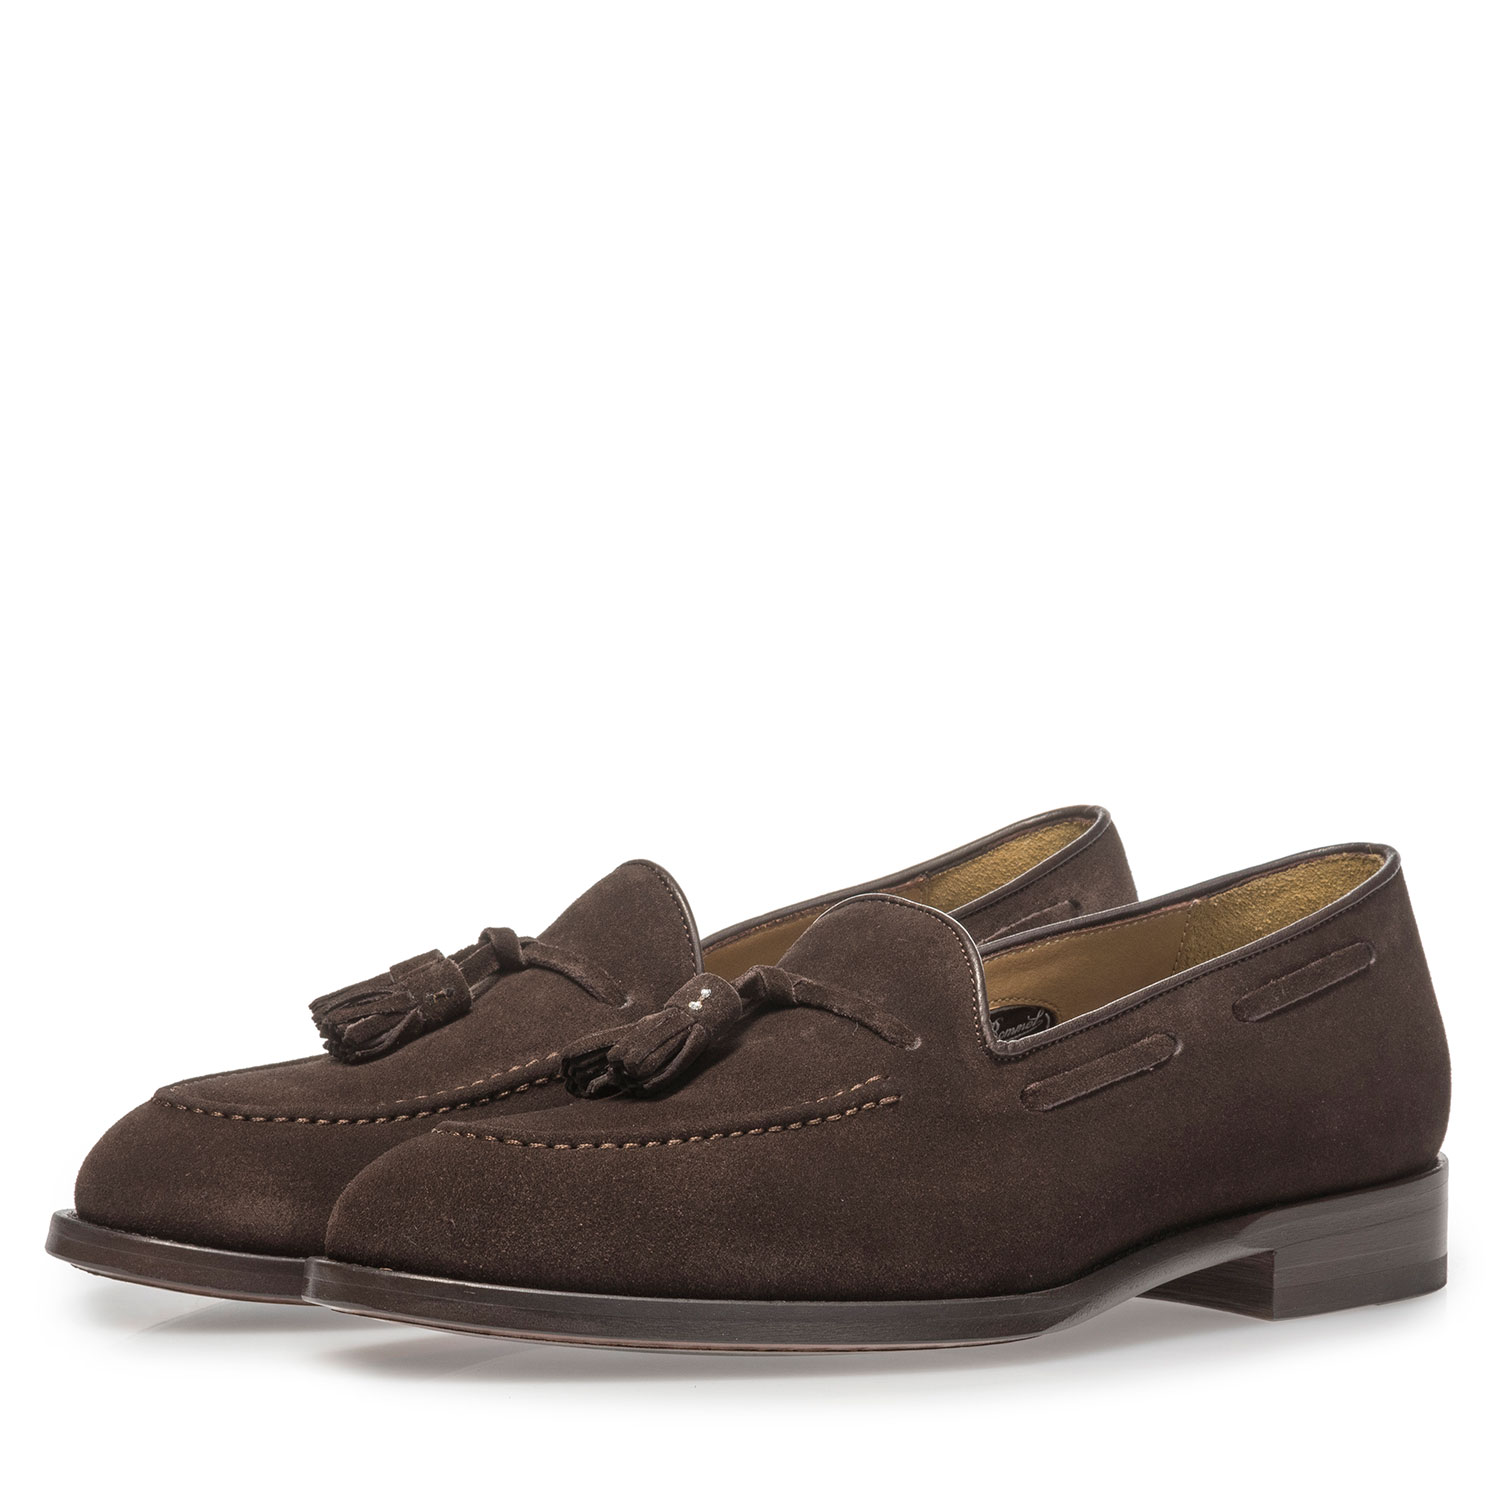 11131/04 - Dark brown suede leather loafer